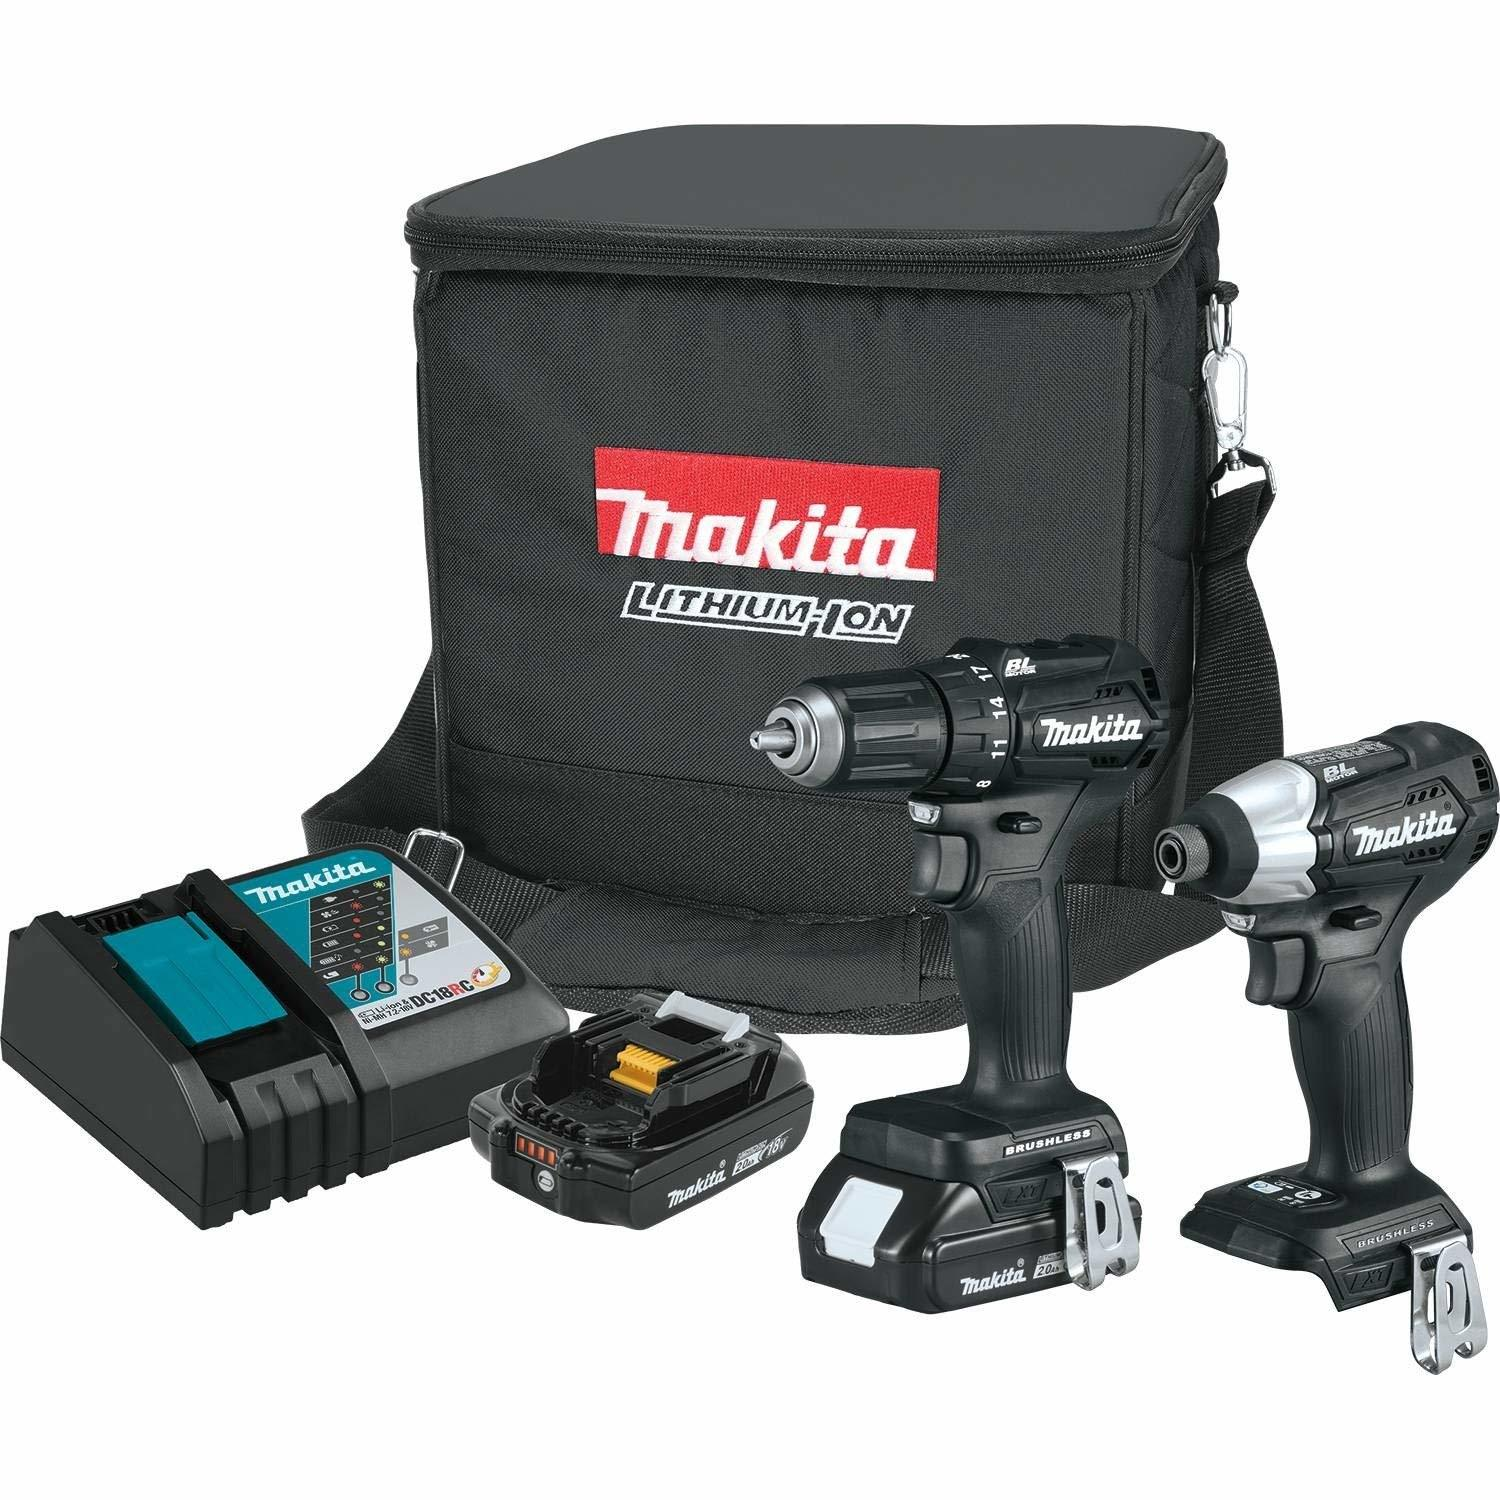 Makita LXT review